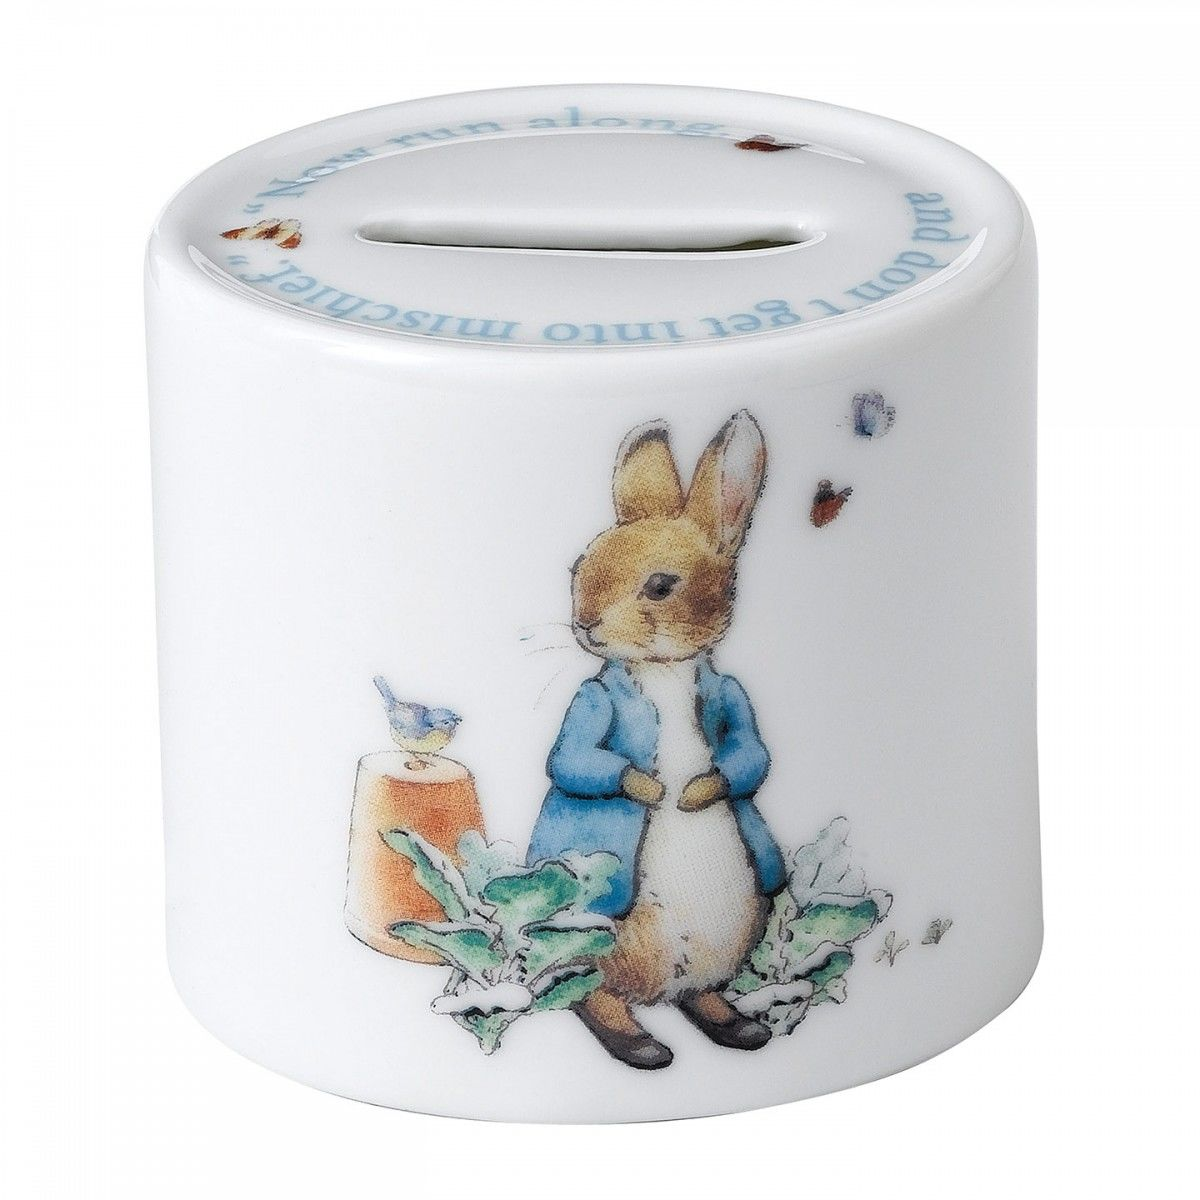 Peter Rabbit Peter Rabbit Money Box